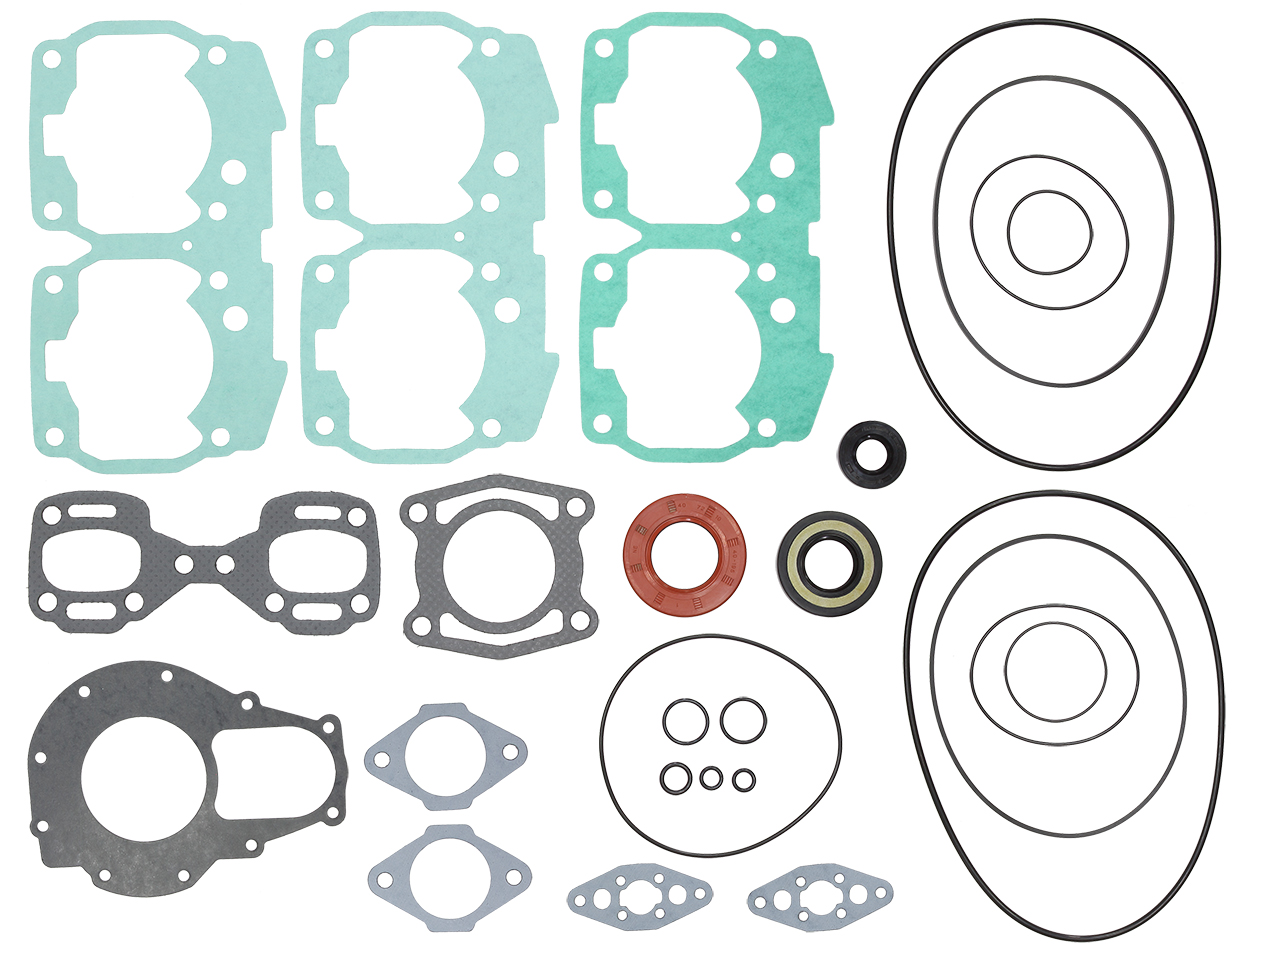 NAMURA COMPLETE GASKET KIT NW-10005F